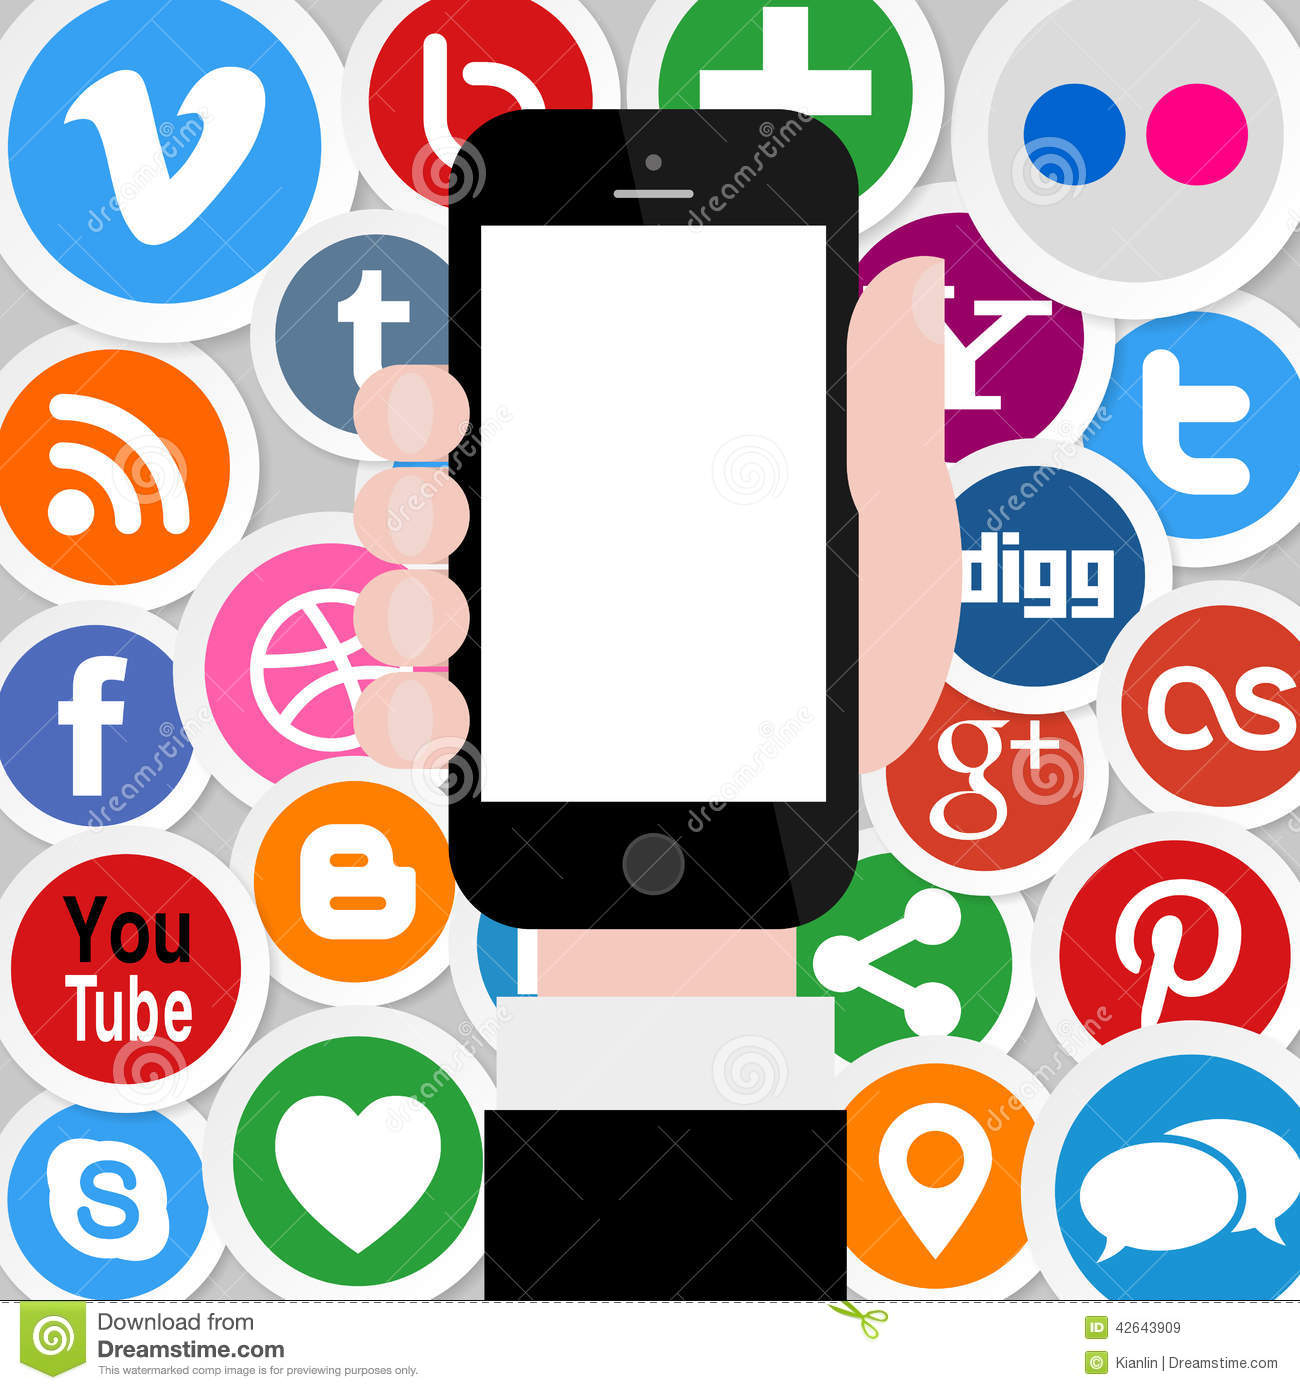 Social Media Icons with Hand Holding Smartphone 2